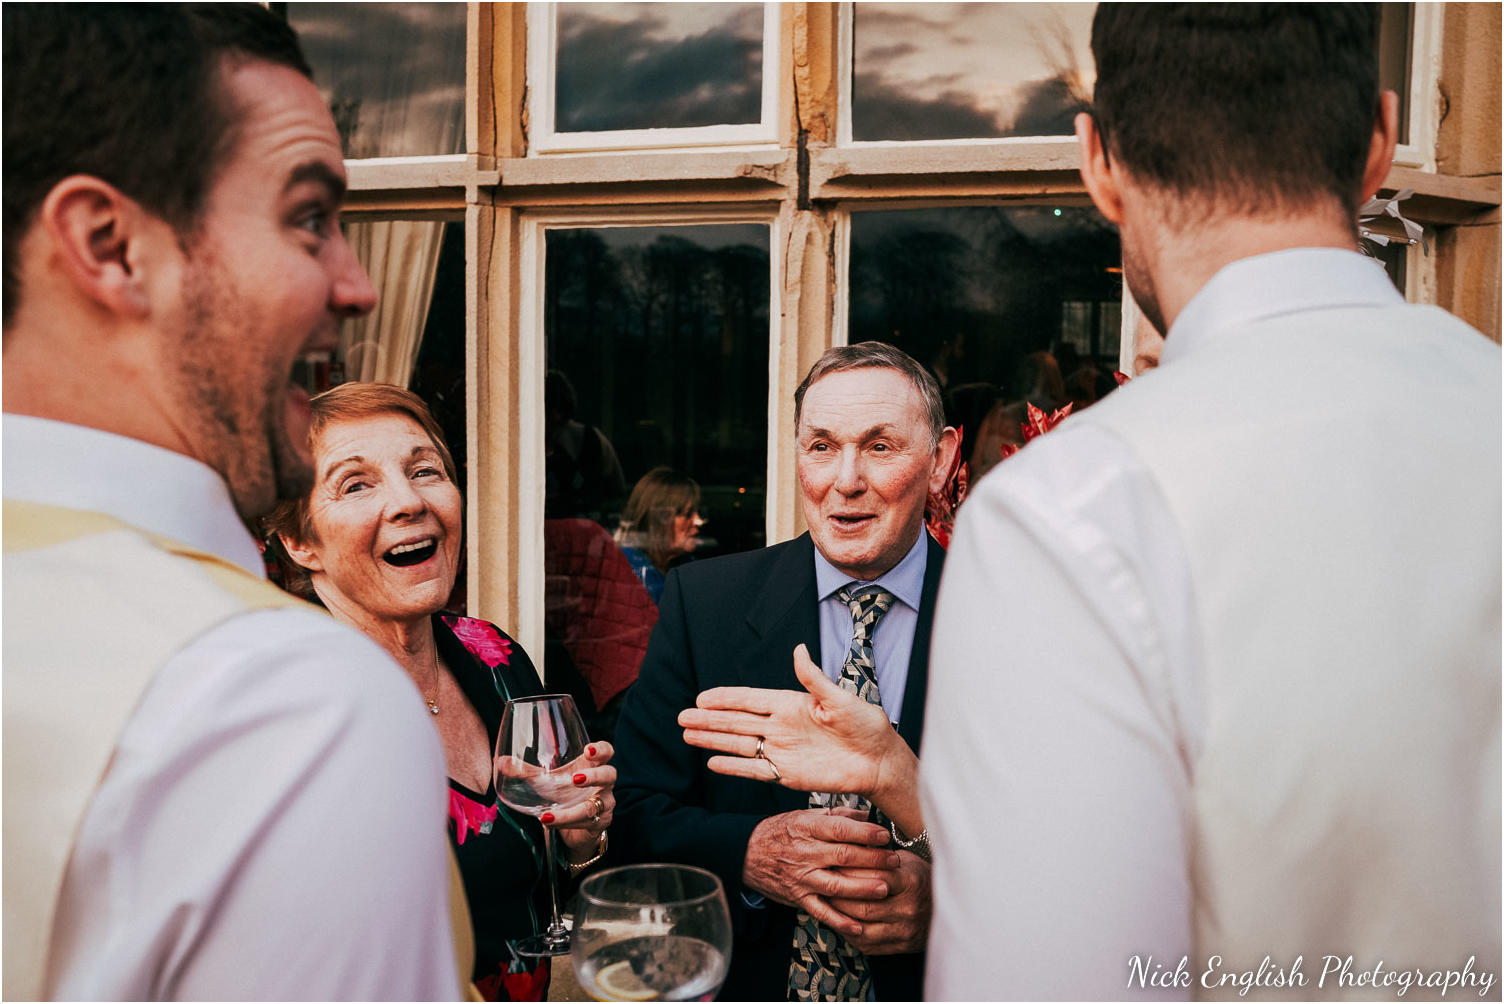 Mitton_Hall_Wedding_Photographer-154.jpg